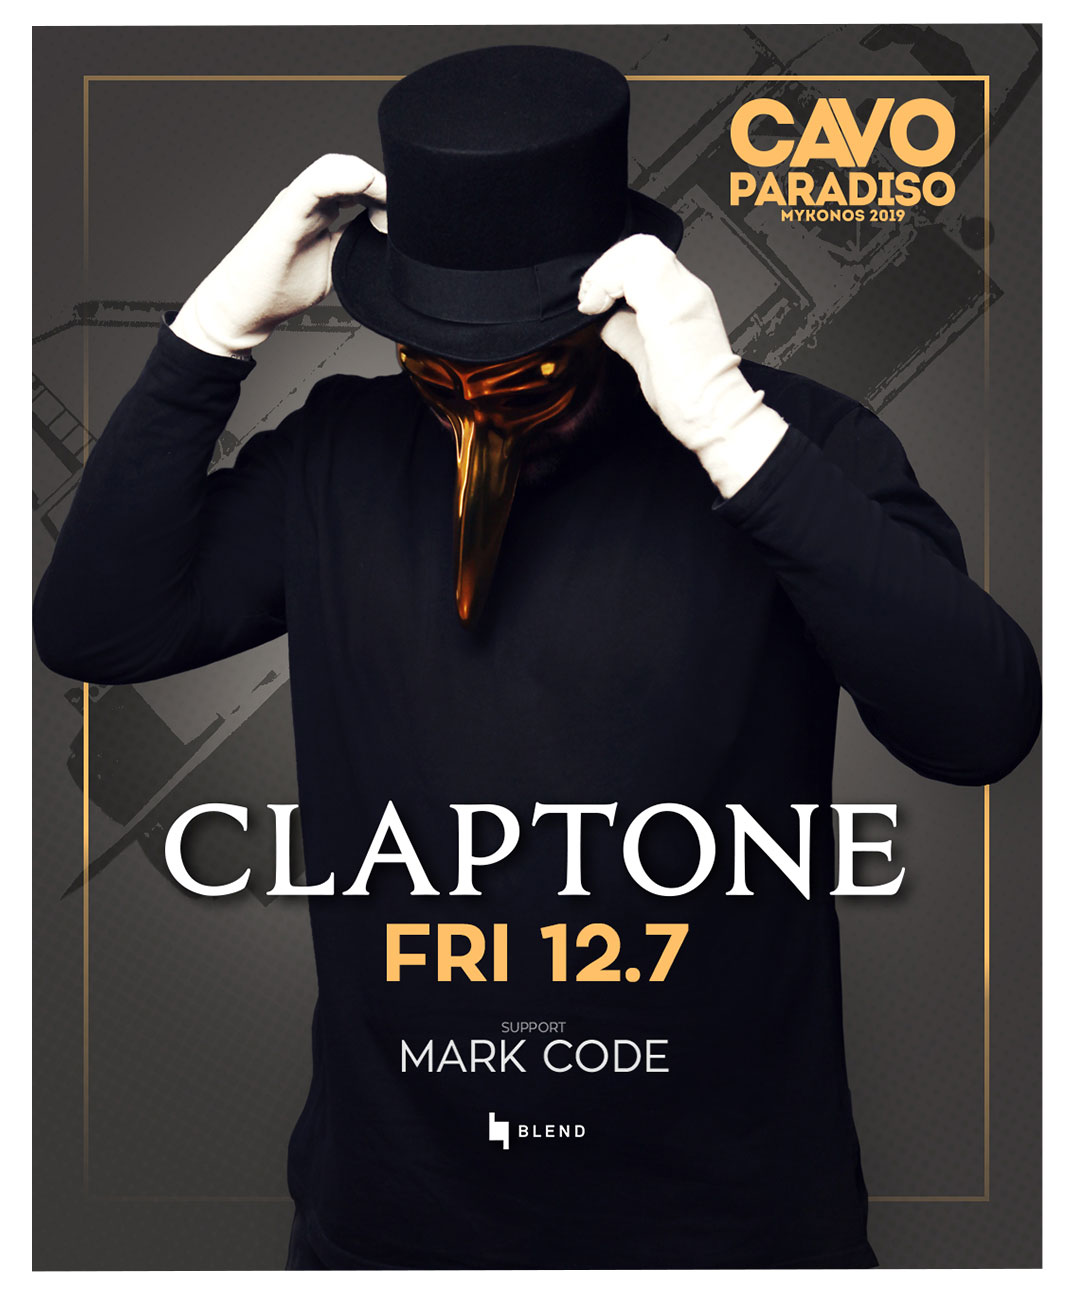 Claptone w/ support by Mark Code